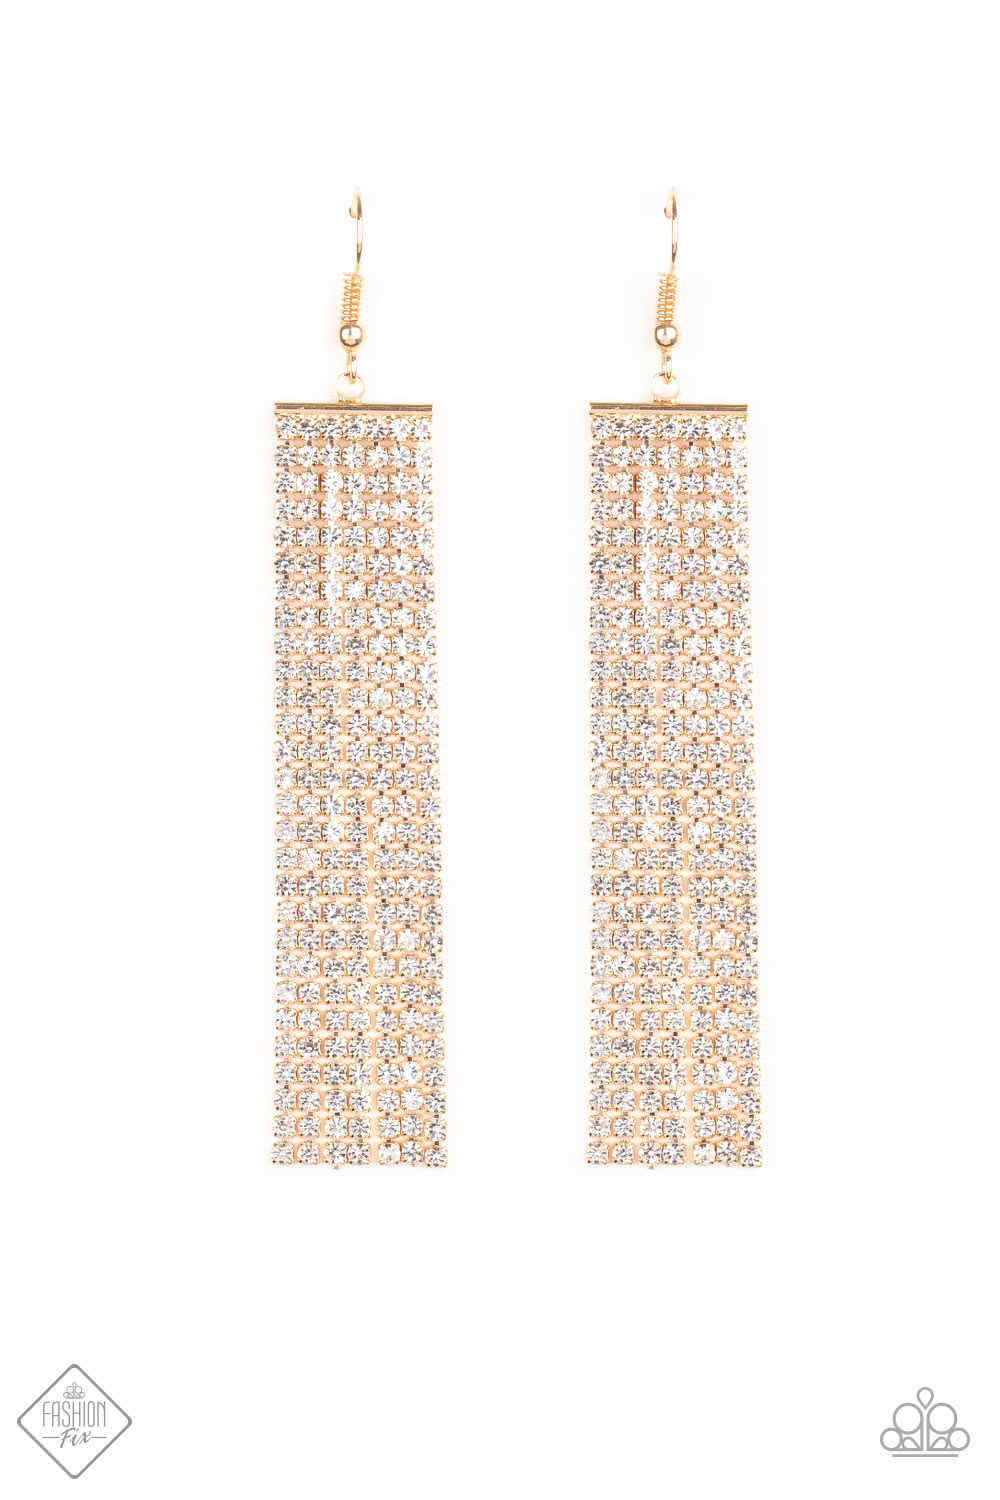 Magnificent Musings Top-Down Shimmer - Gold Earrings